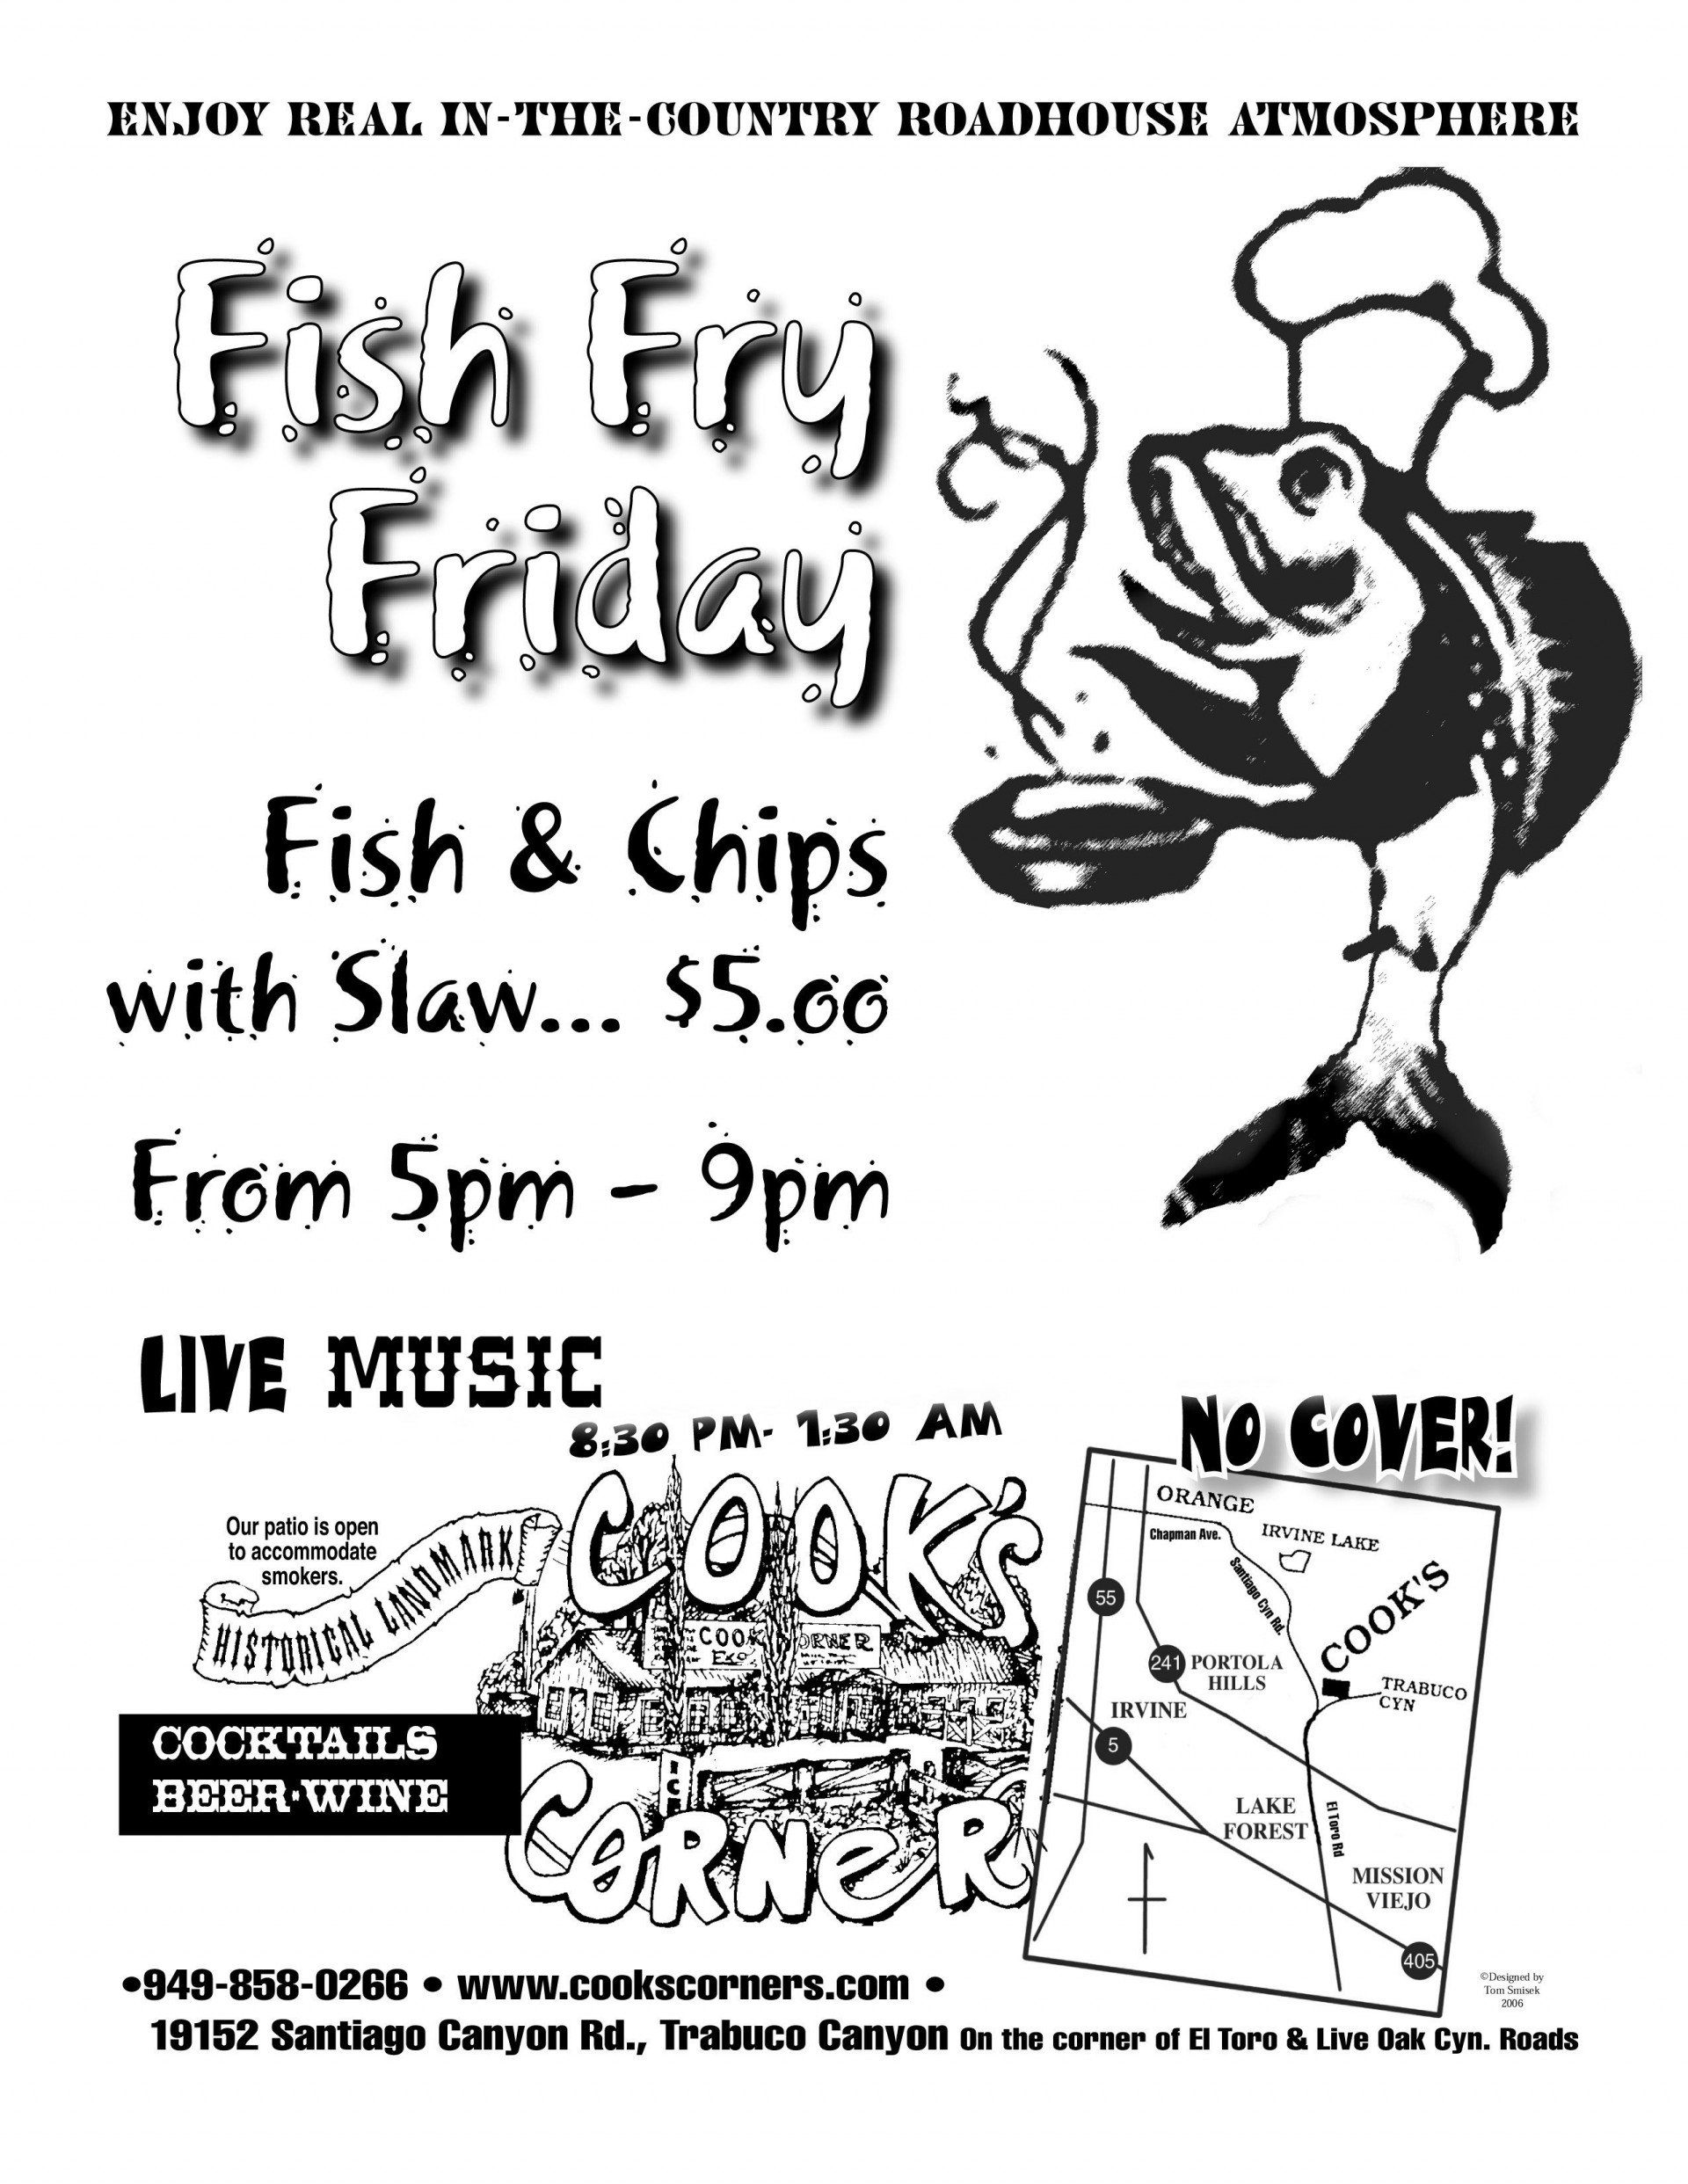 011 Remarkable Fish Fry Flyer Template High Definition  Printable Free Powerpoint Psd1920